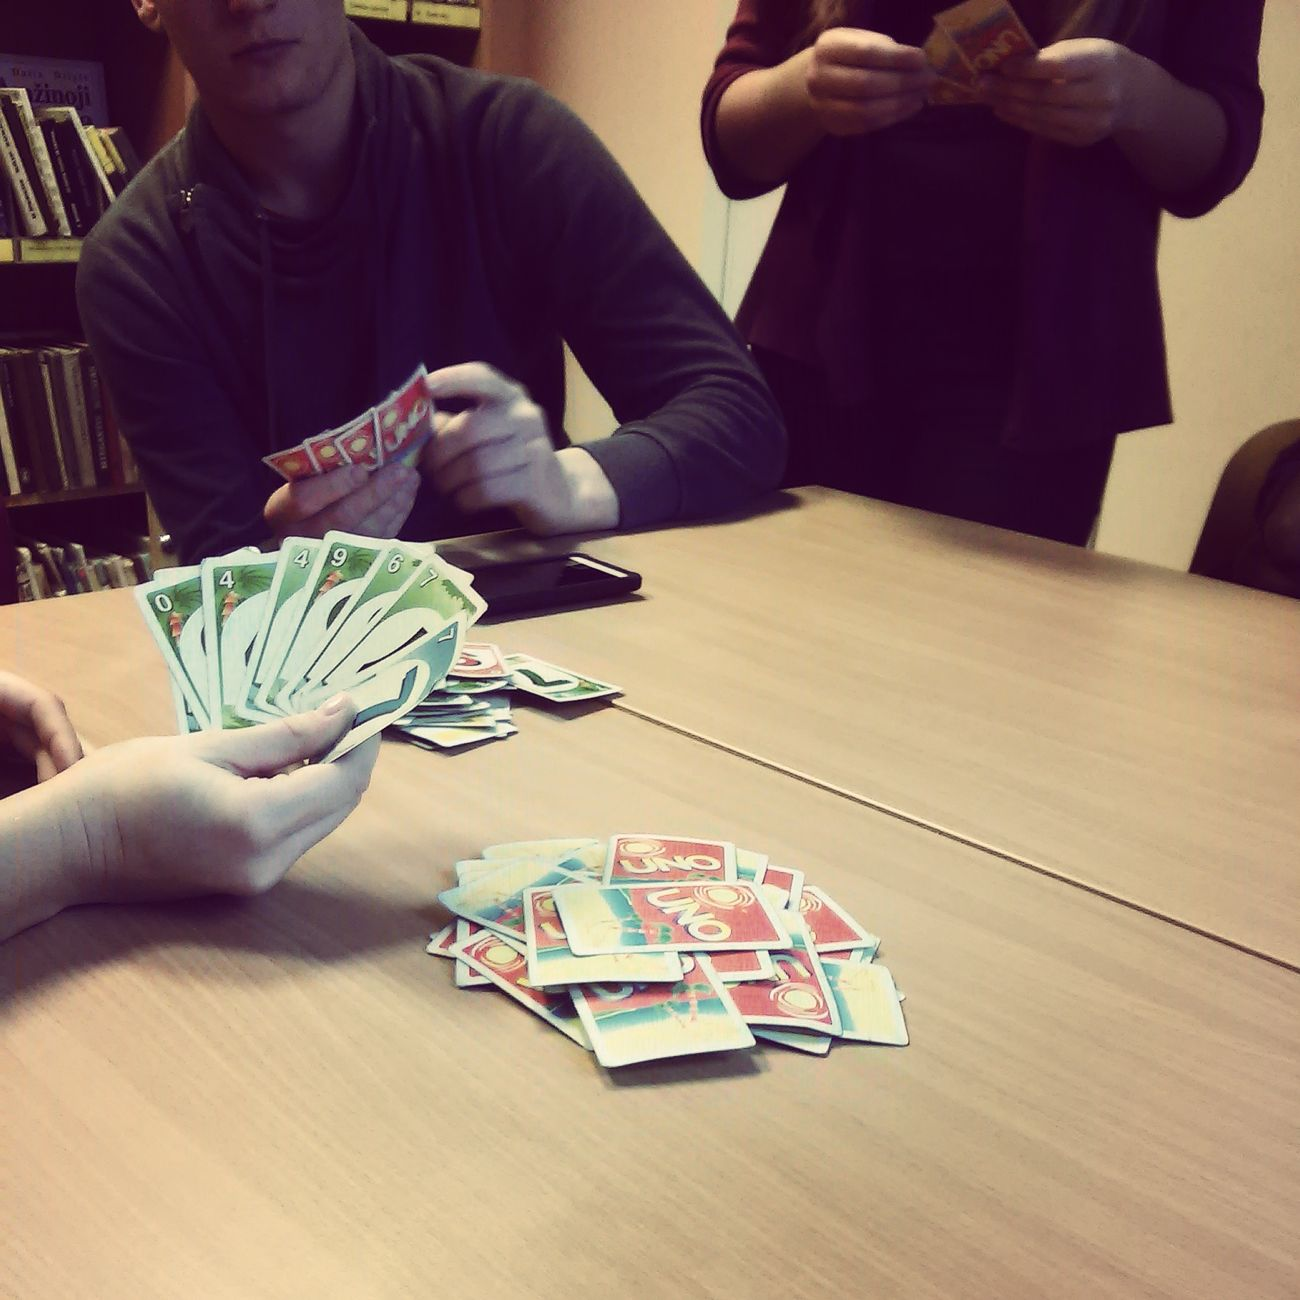 Playing UNO Jogging Relaxing